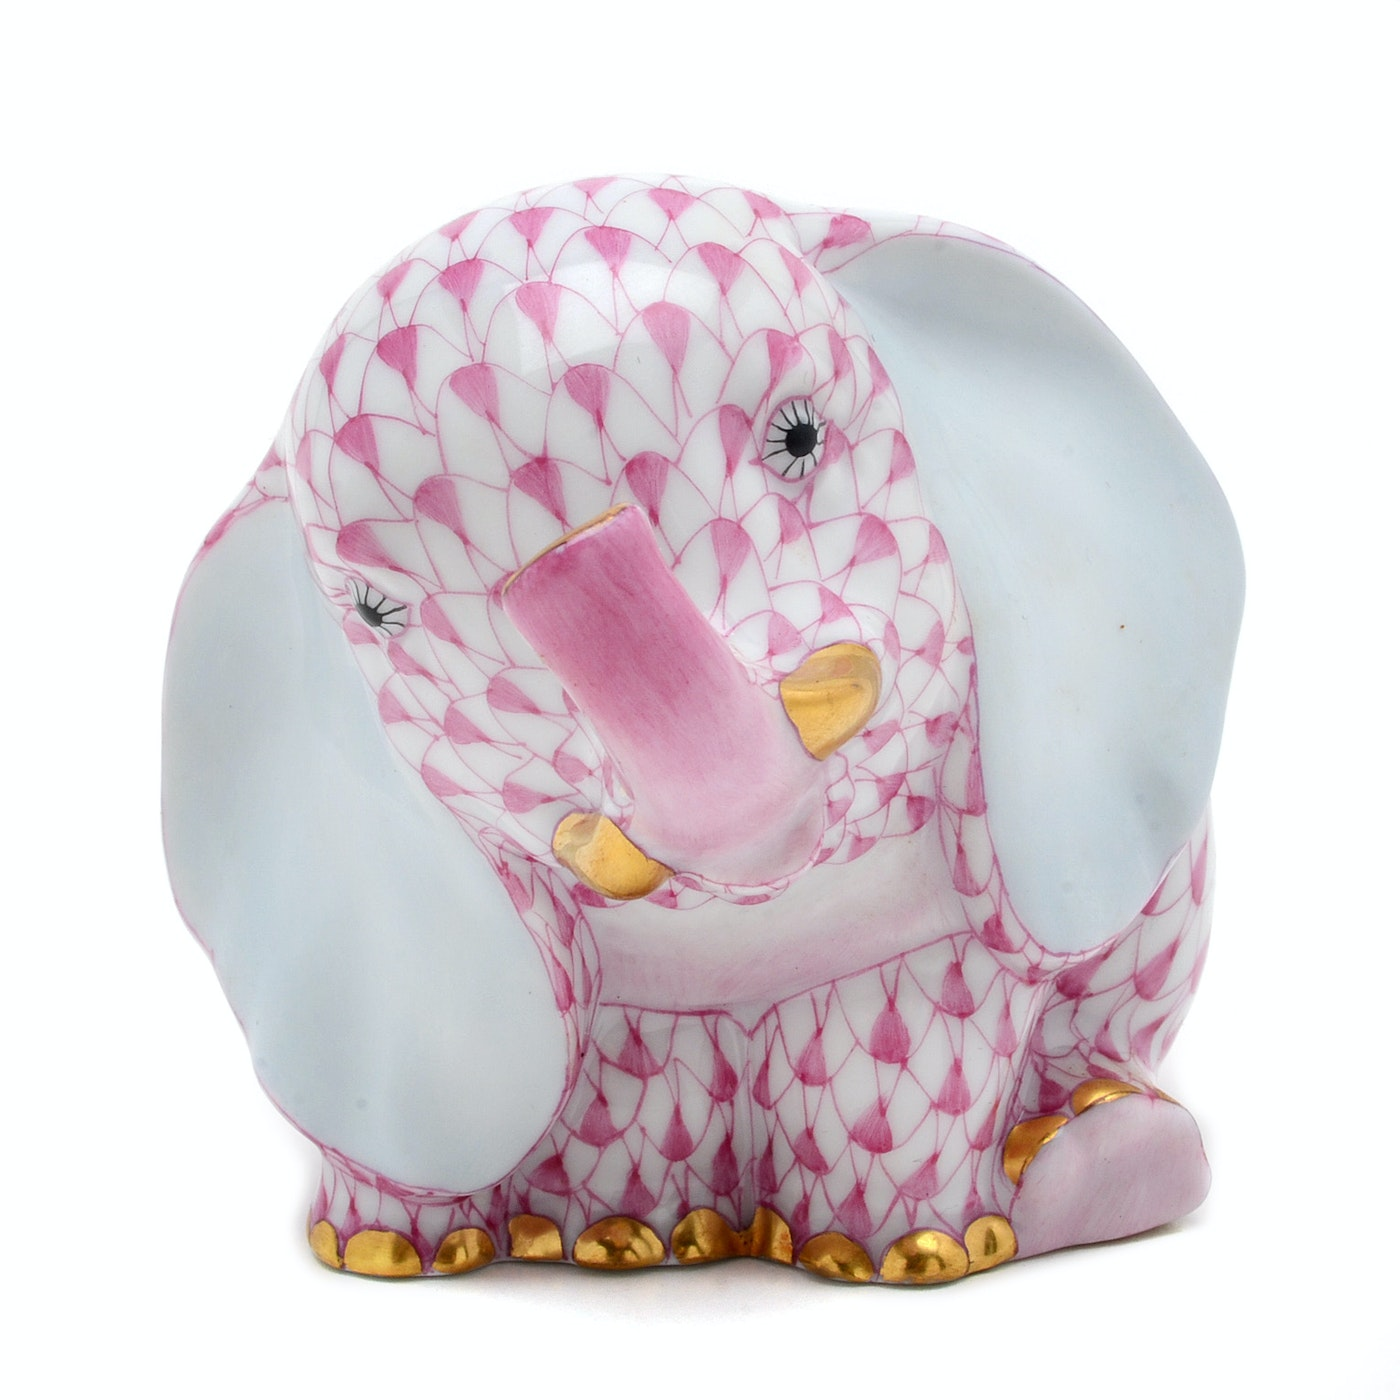 Herend Kangaroo Hand Painted Porcelain Figurine In Pink: Herend Hungary Baby Elephant Figurine In Pink Fishnet